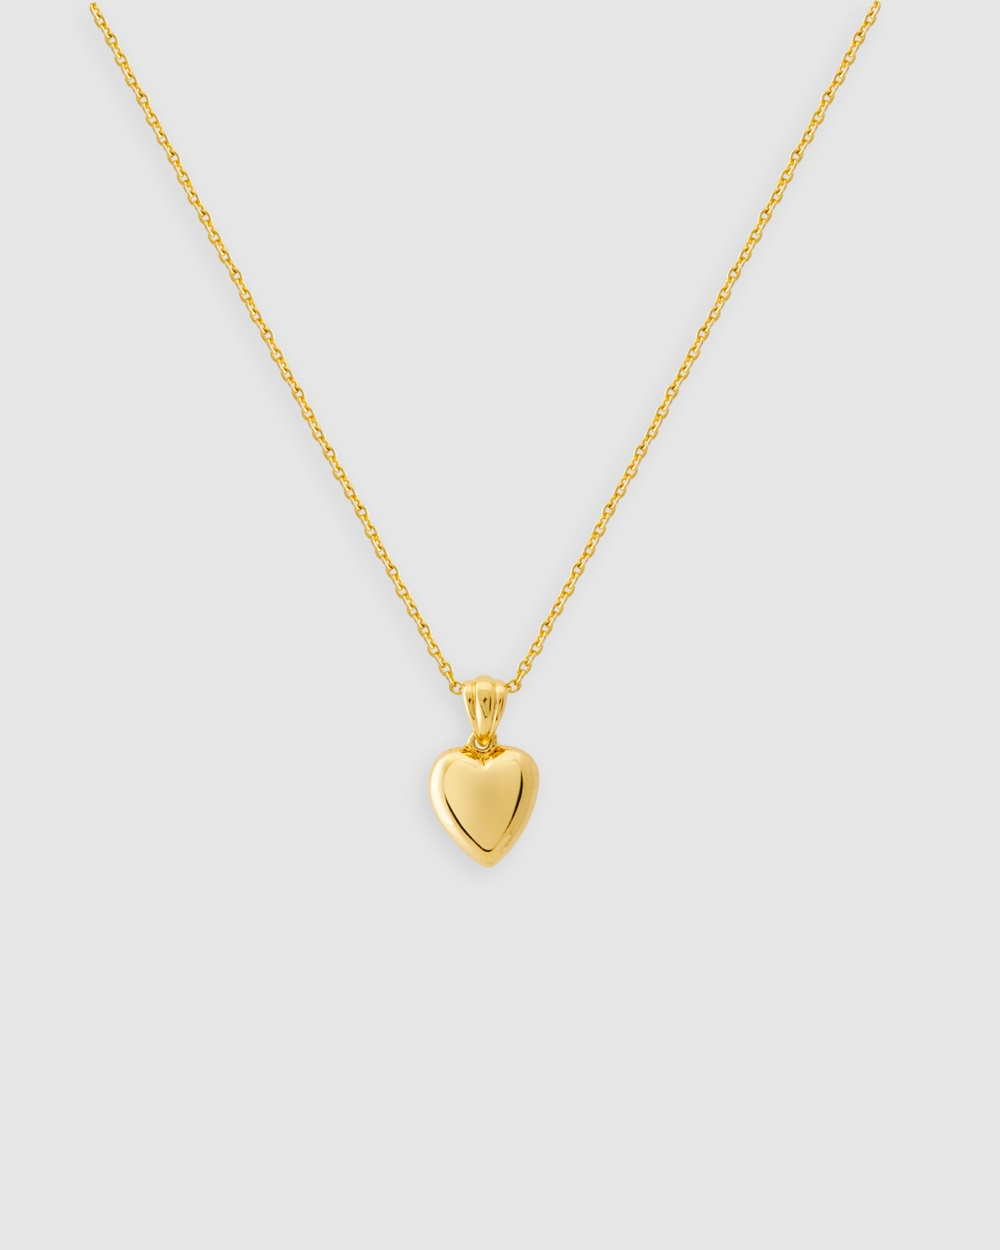 ALIX YANG Stole My Heart Necklace Jewellery Gold